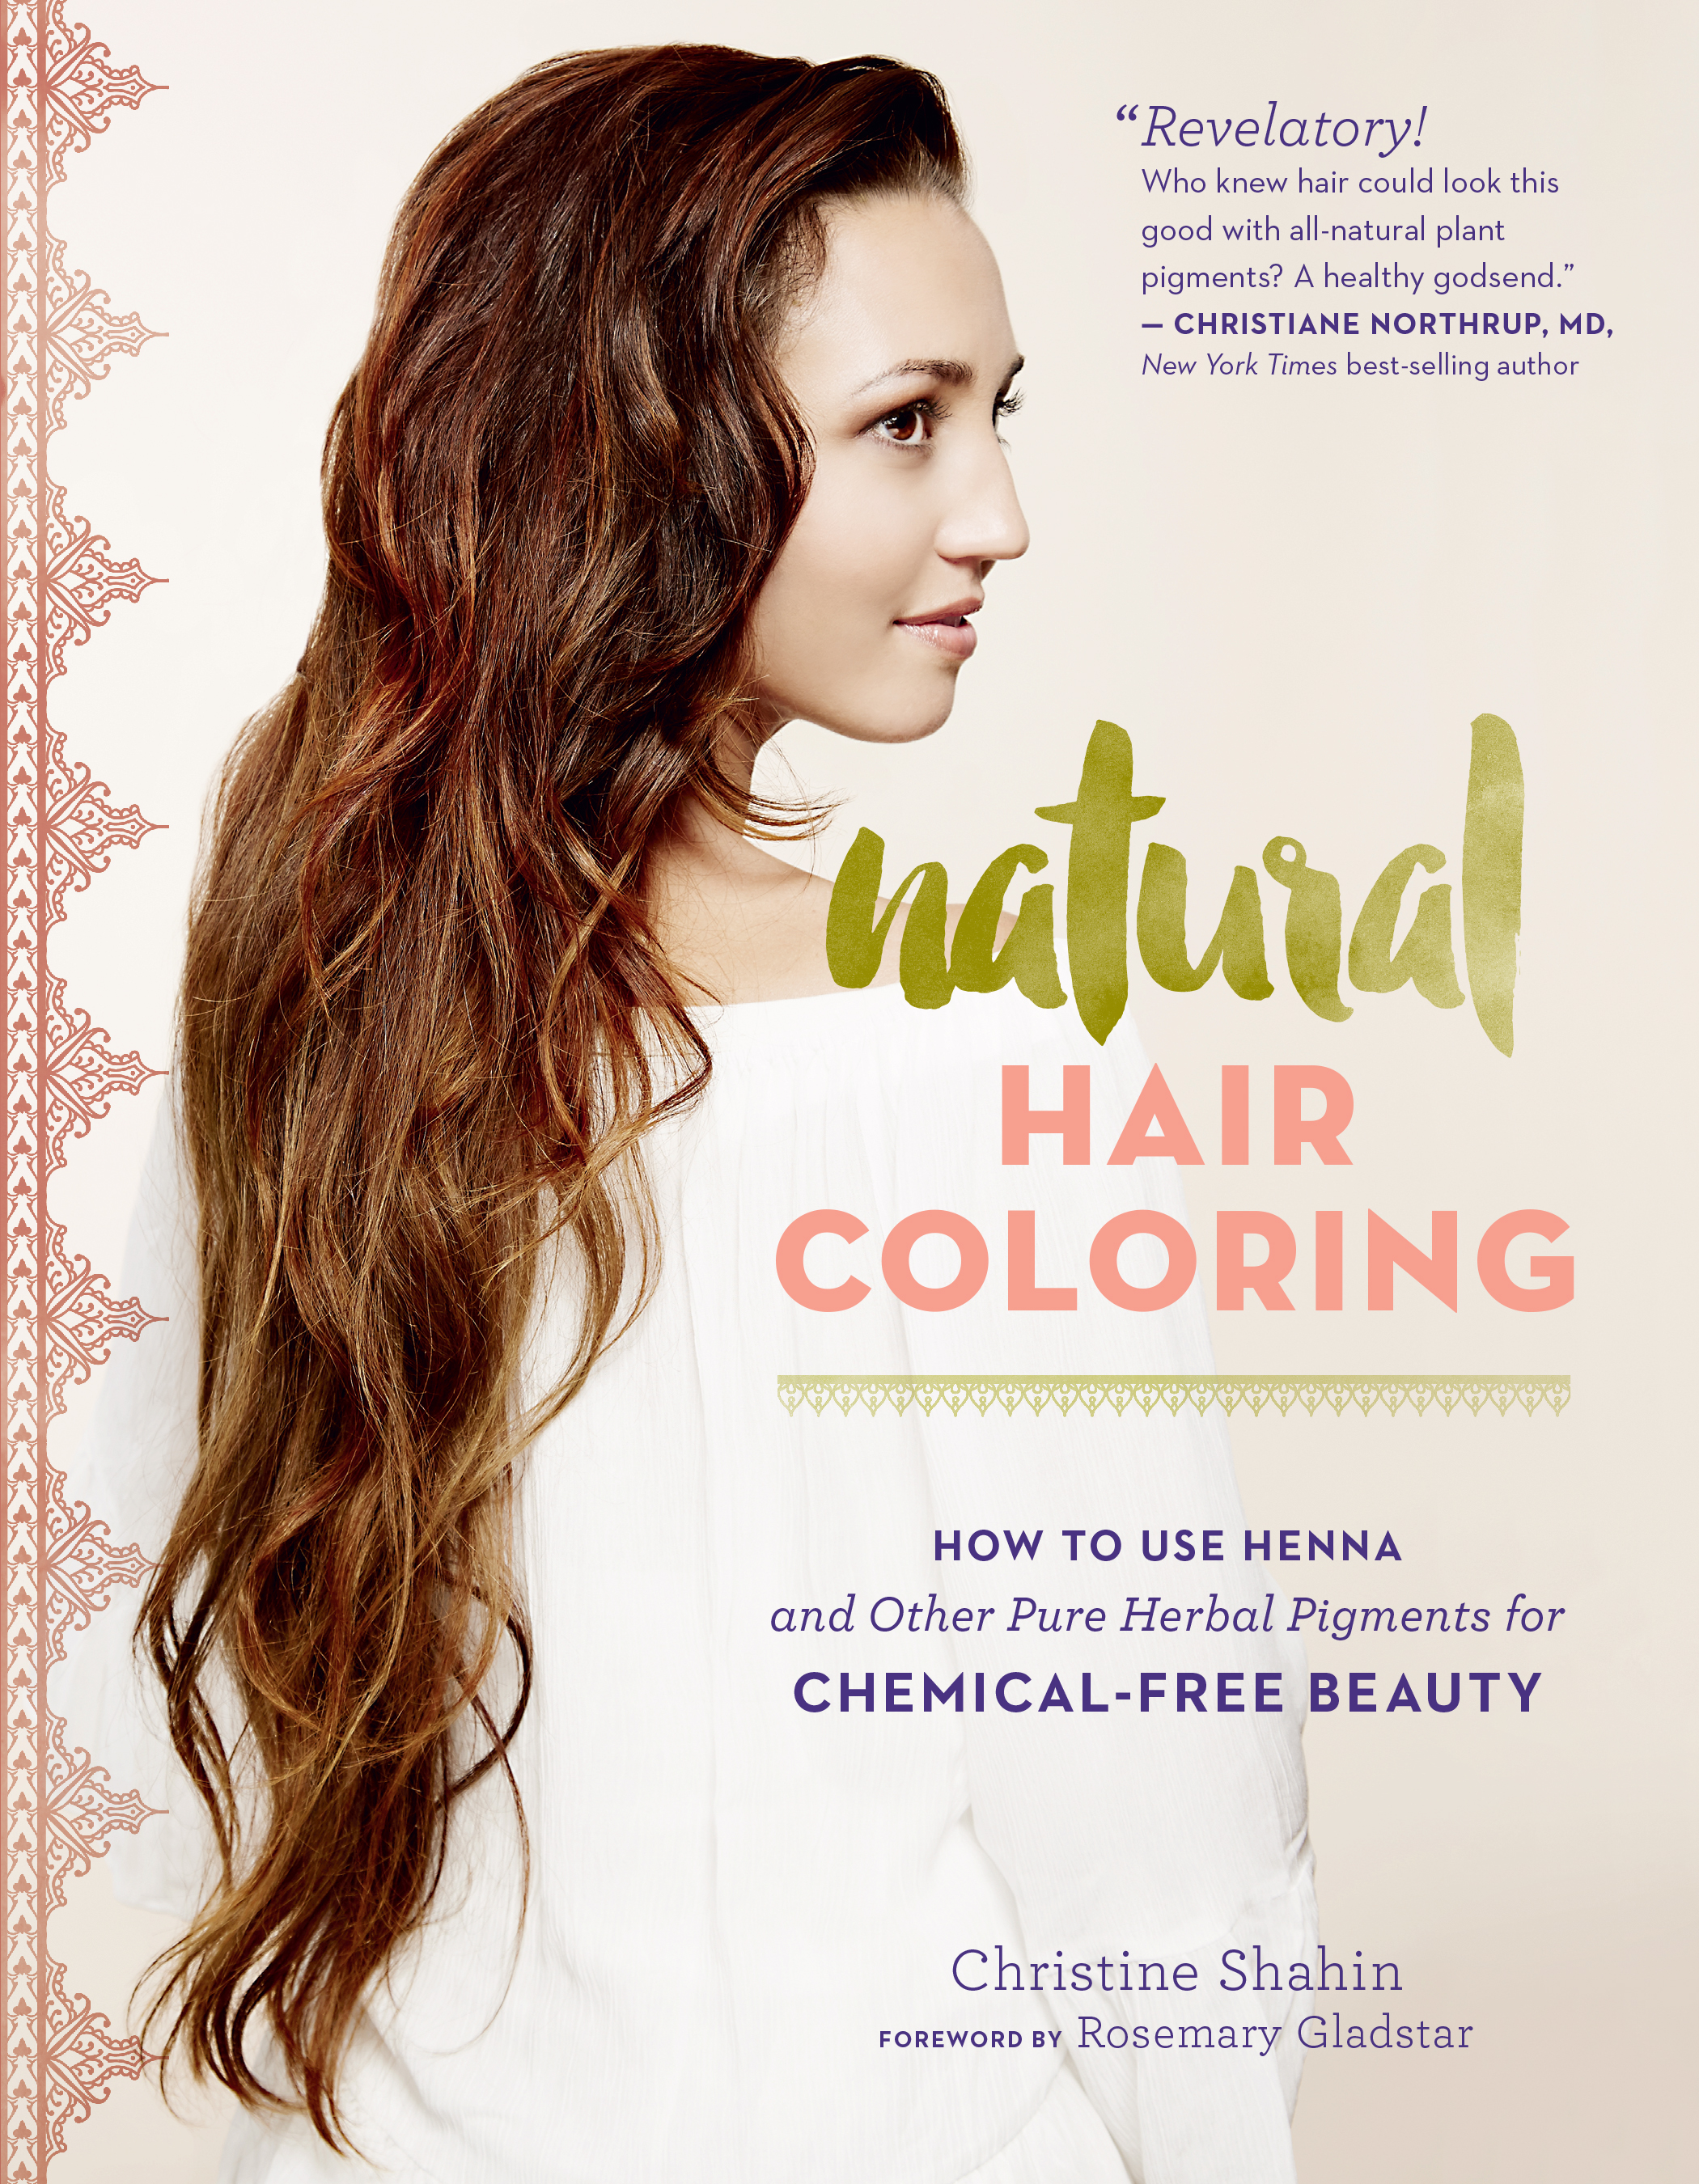 Natural Hair Coloring How to Use Henna and Other Pure Herbal Pigments for Chemical-Free Beauty - Christine Shahin